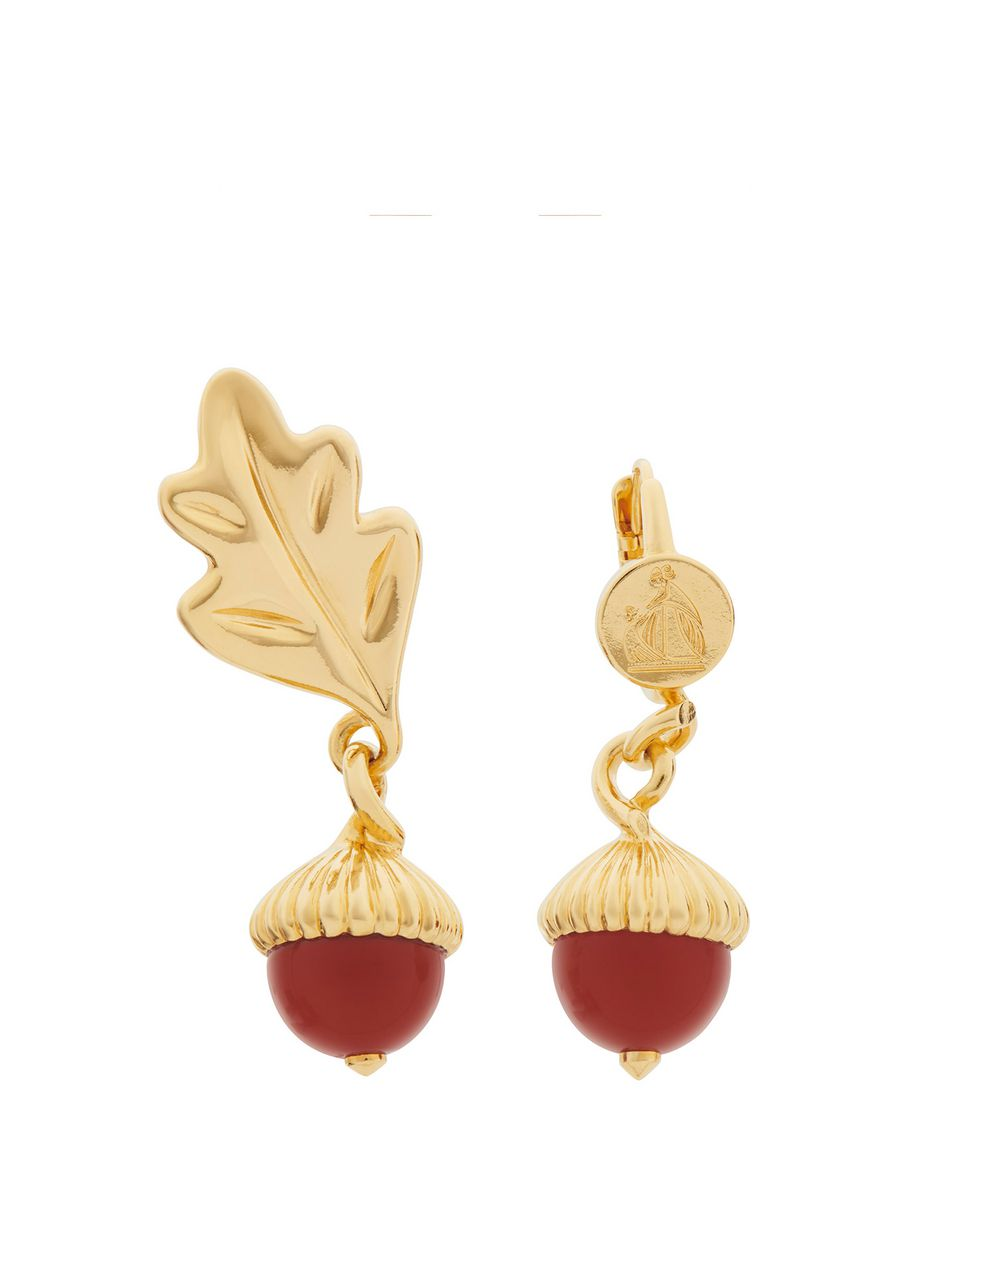 AUTUMN DAY EARRINGS WITH CARNELIAN - Lanvin